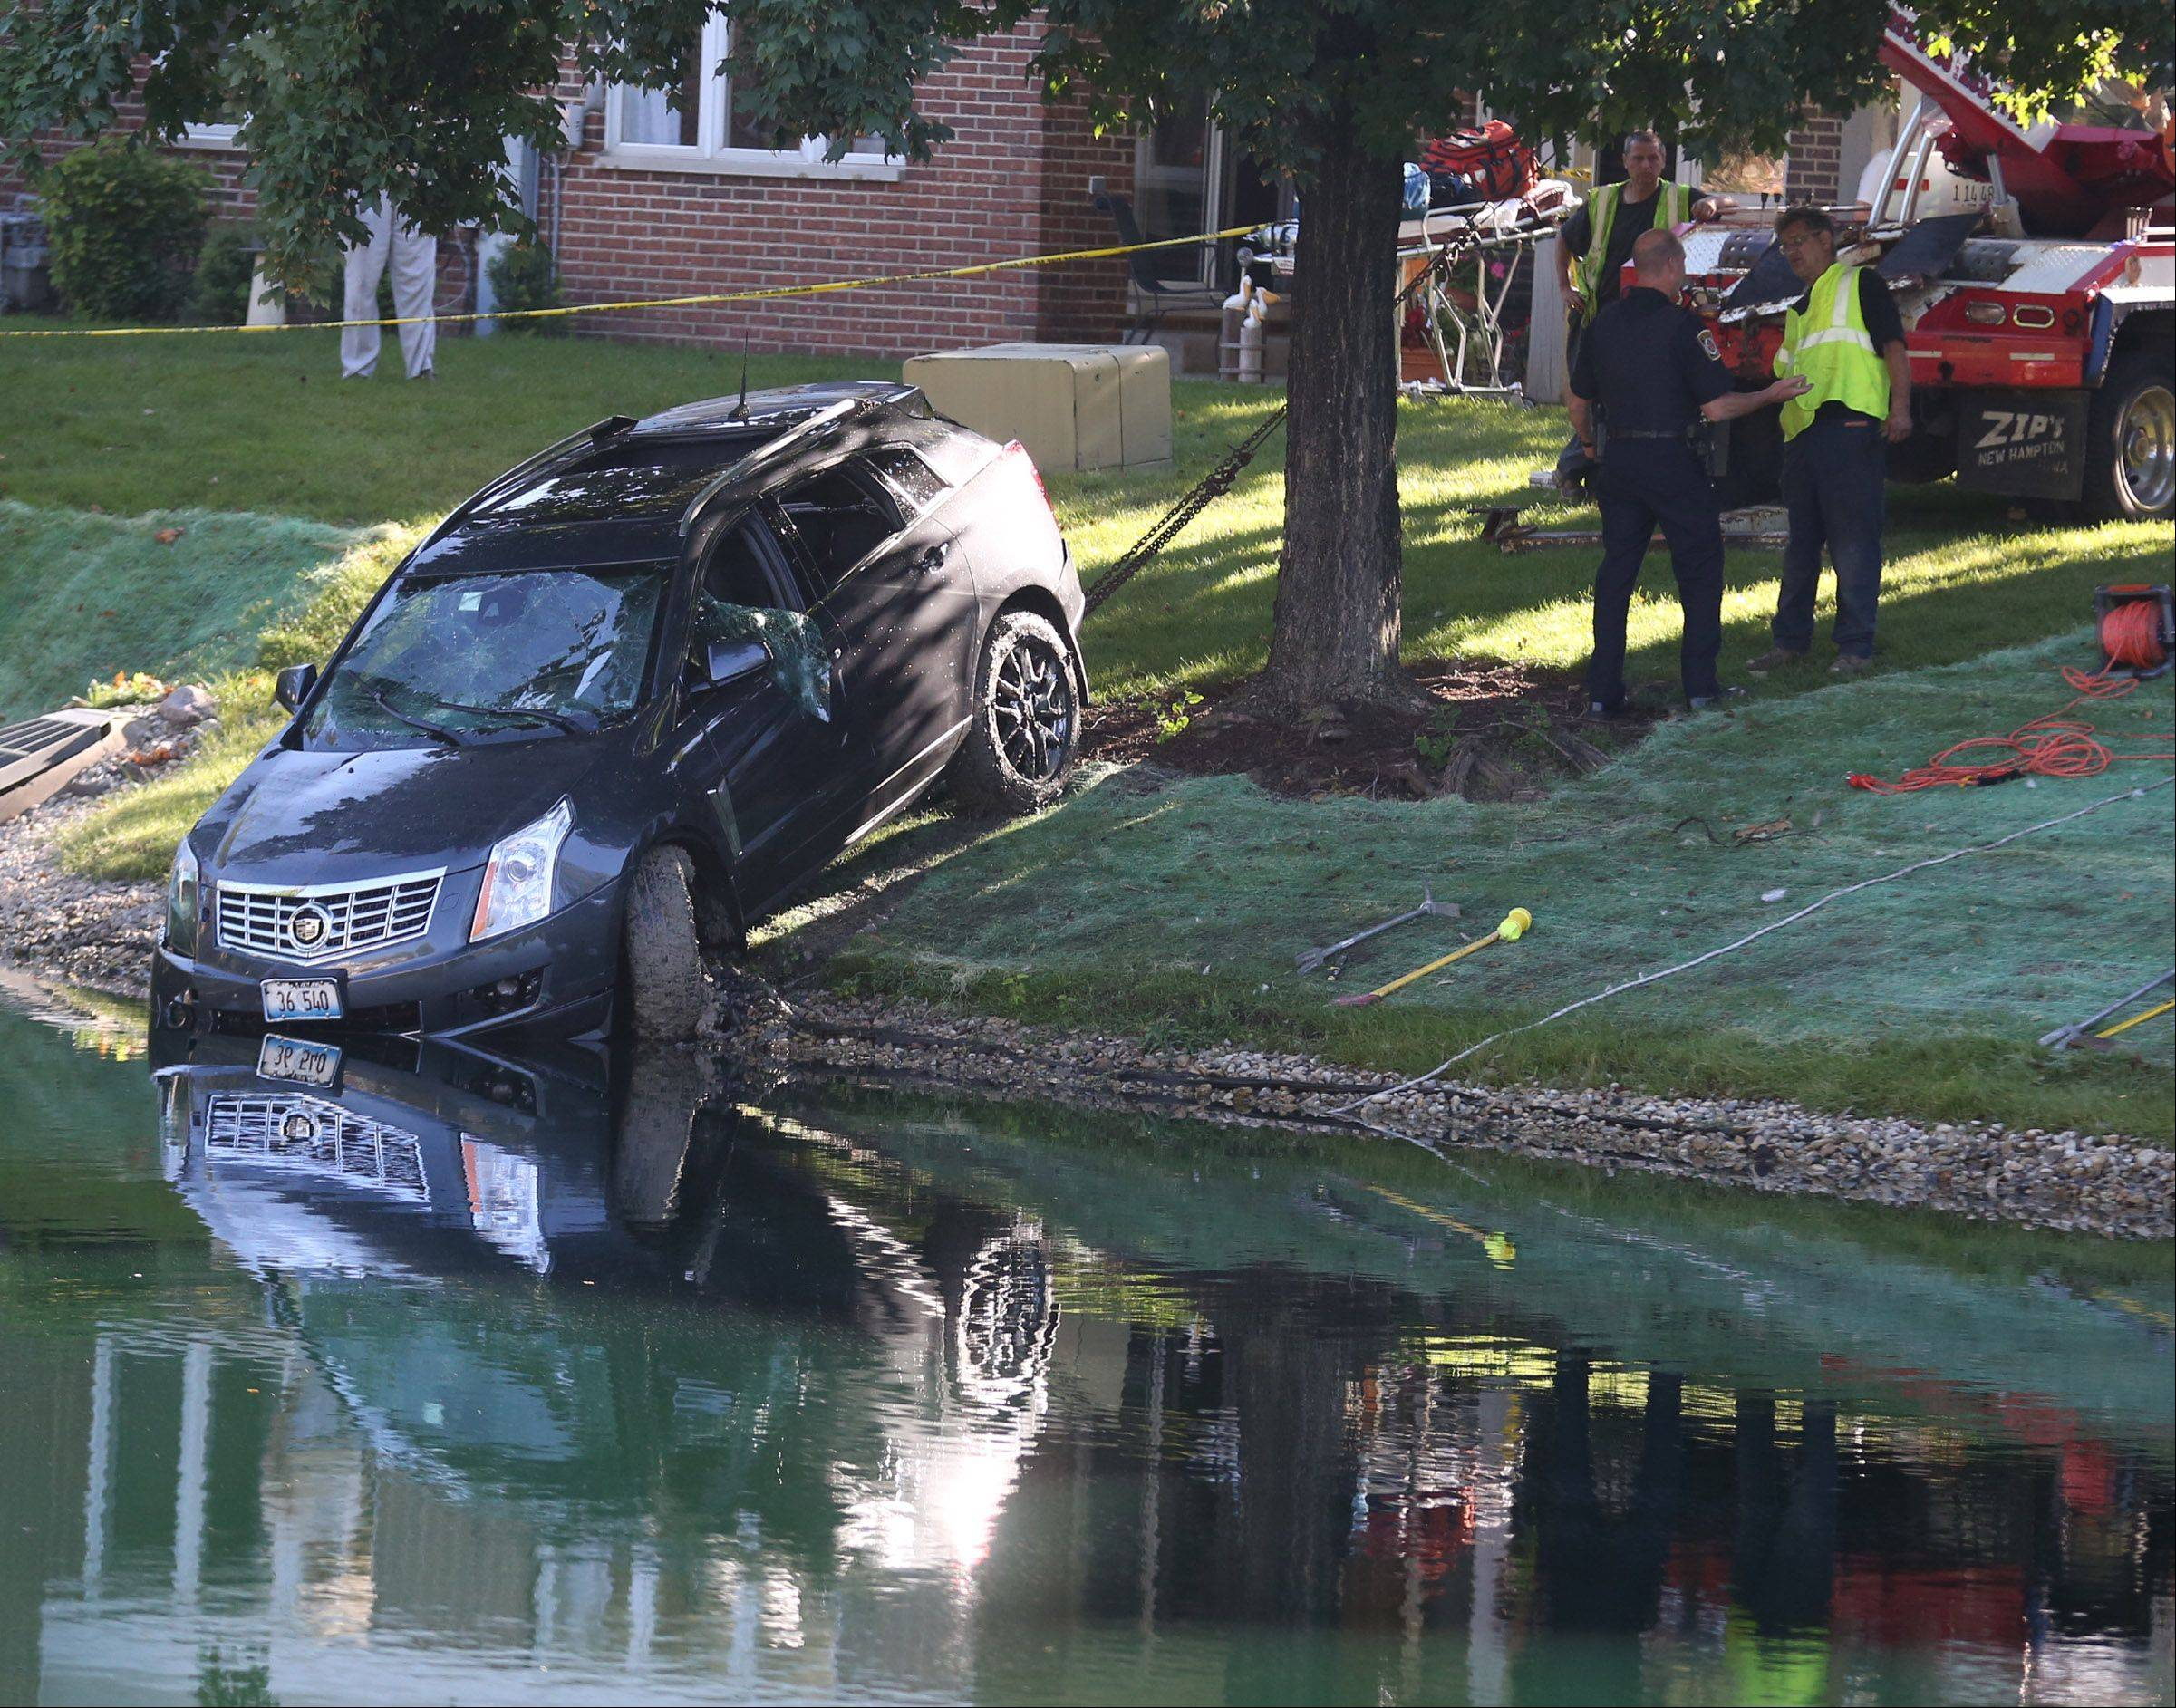 A man was pulled from this car in a pond yesterday in Arlington Heights after neighbors dived in to try to free him from it. They couldn�t get a door or window open.